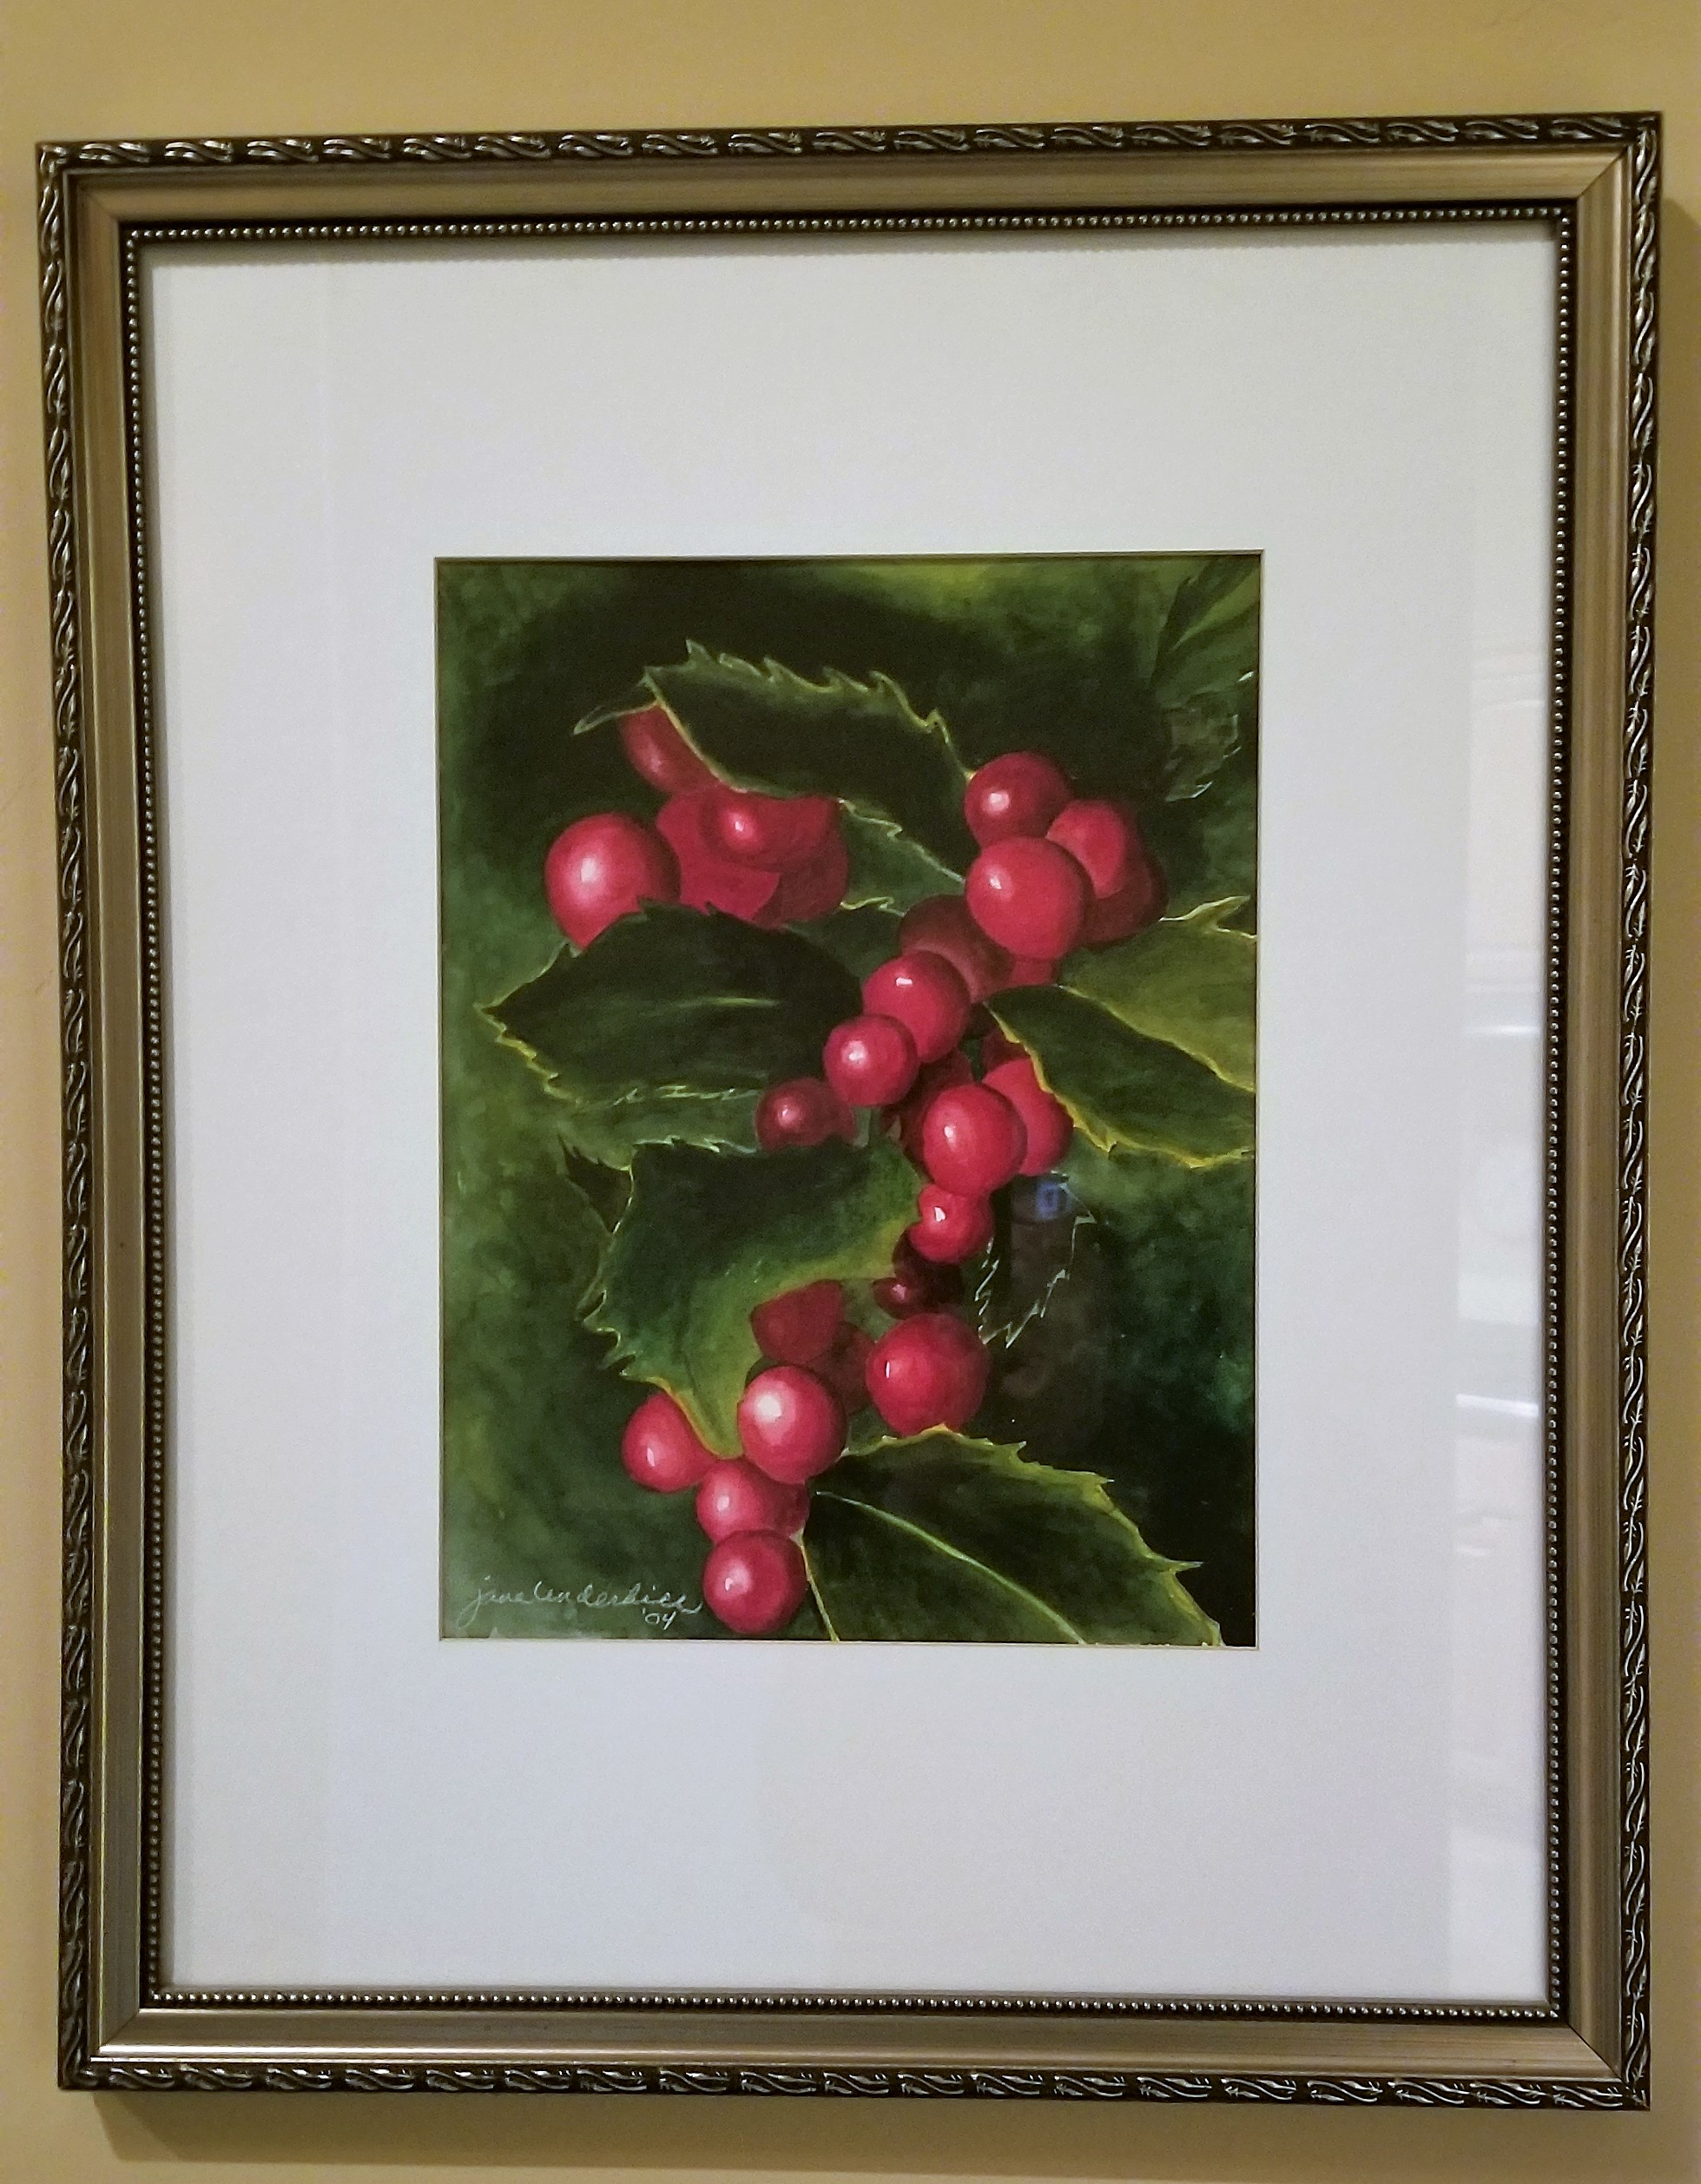 Holly leaves and berries reflect Jane and her family's love of Christmas. This piece is in honor of her daughter, Holly!